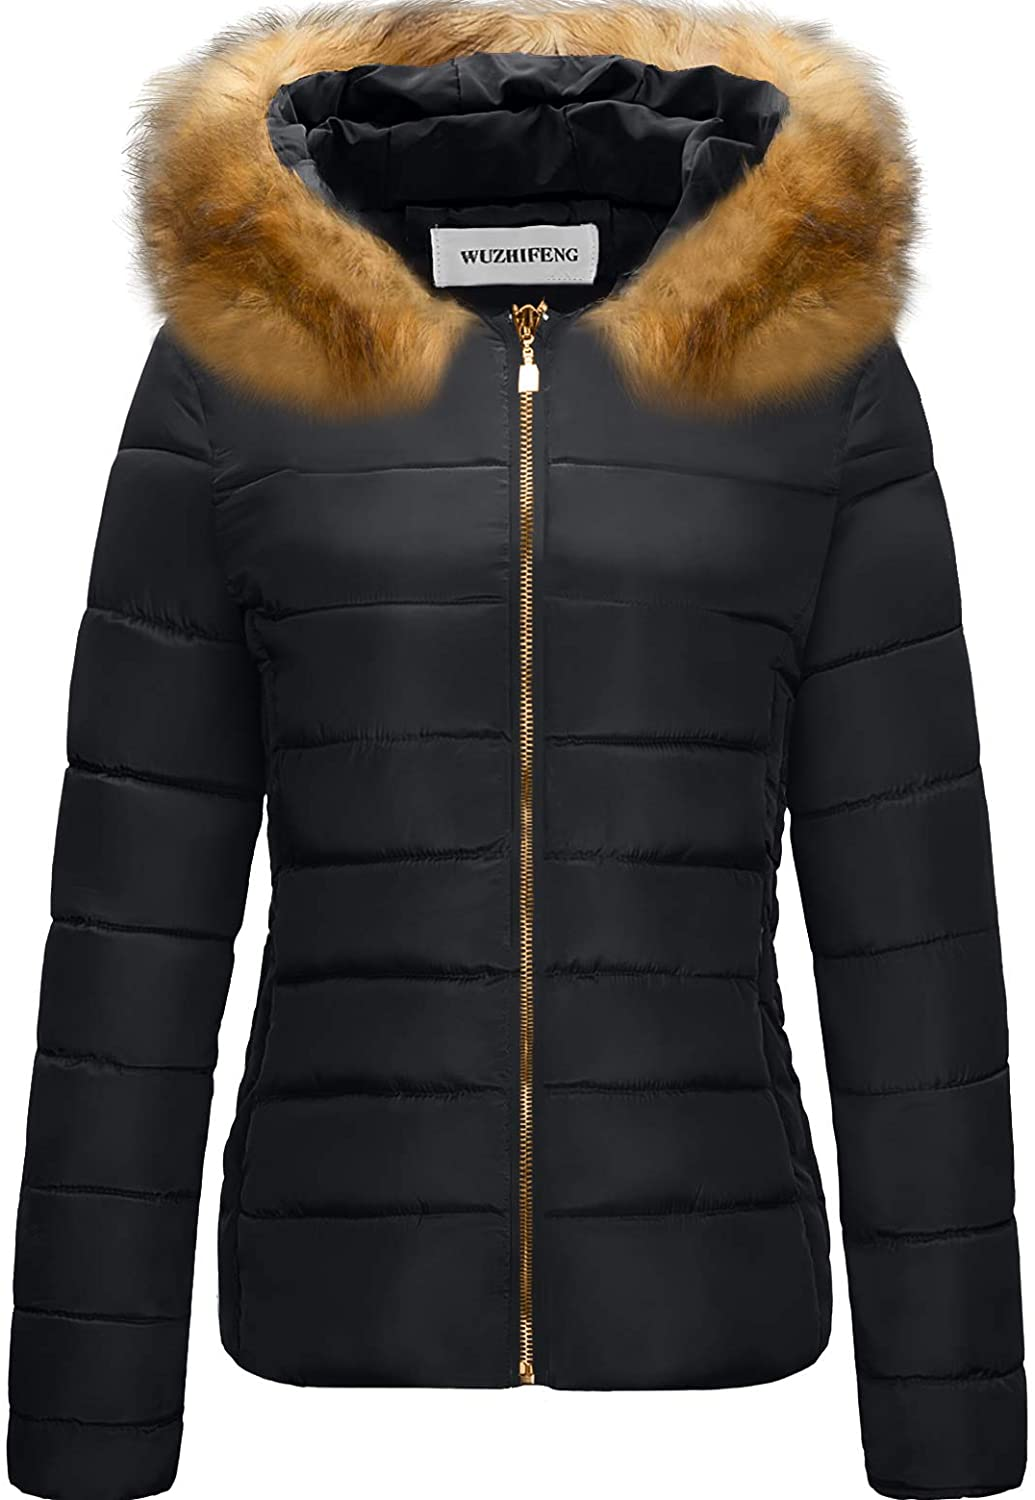 CHERFLY Womens Faux Fur Trim Winter Coat Warm Thickened Puffer Jacket with Hood